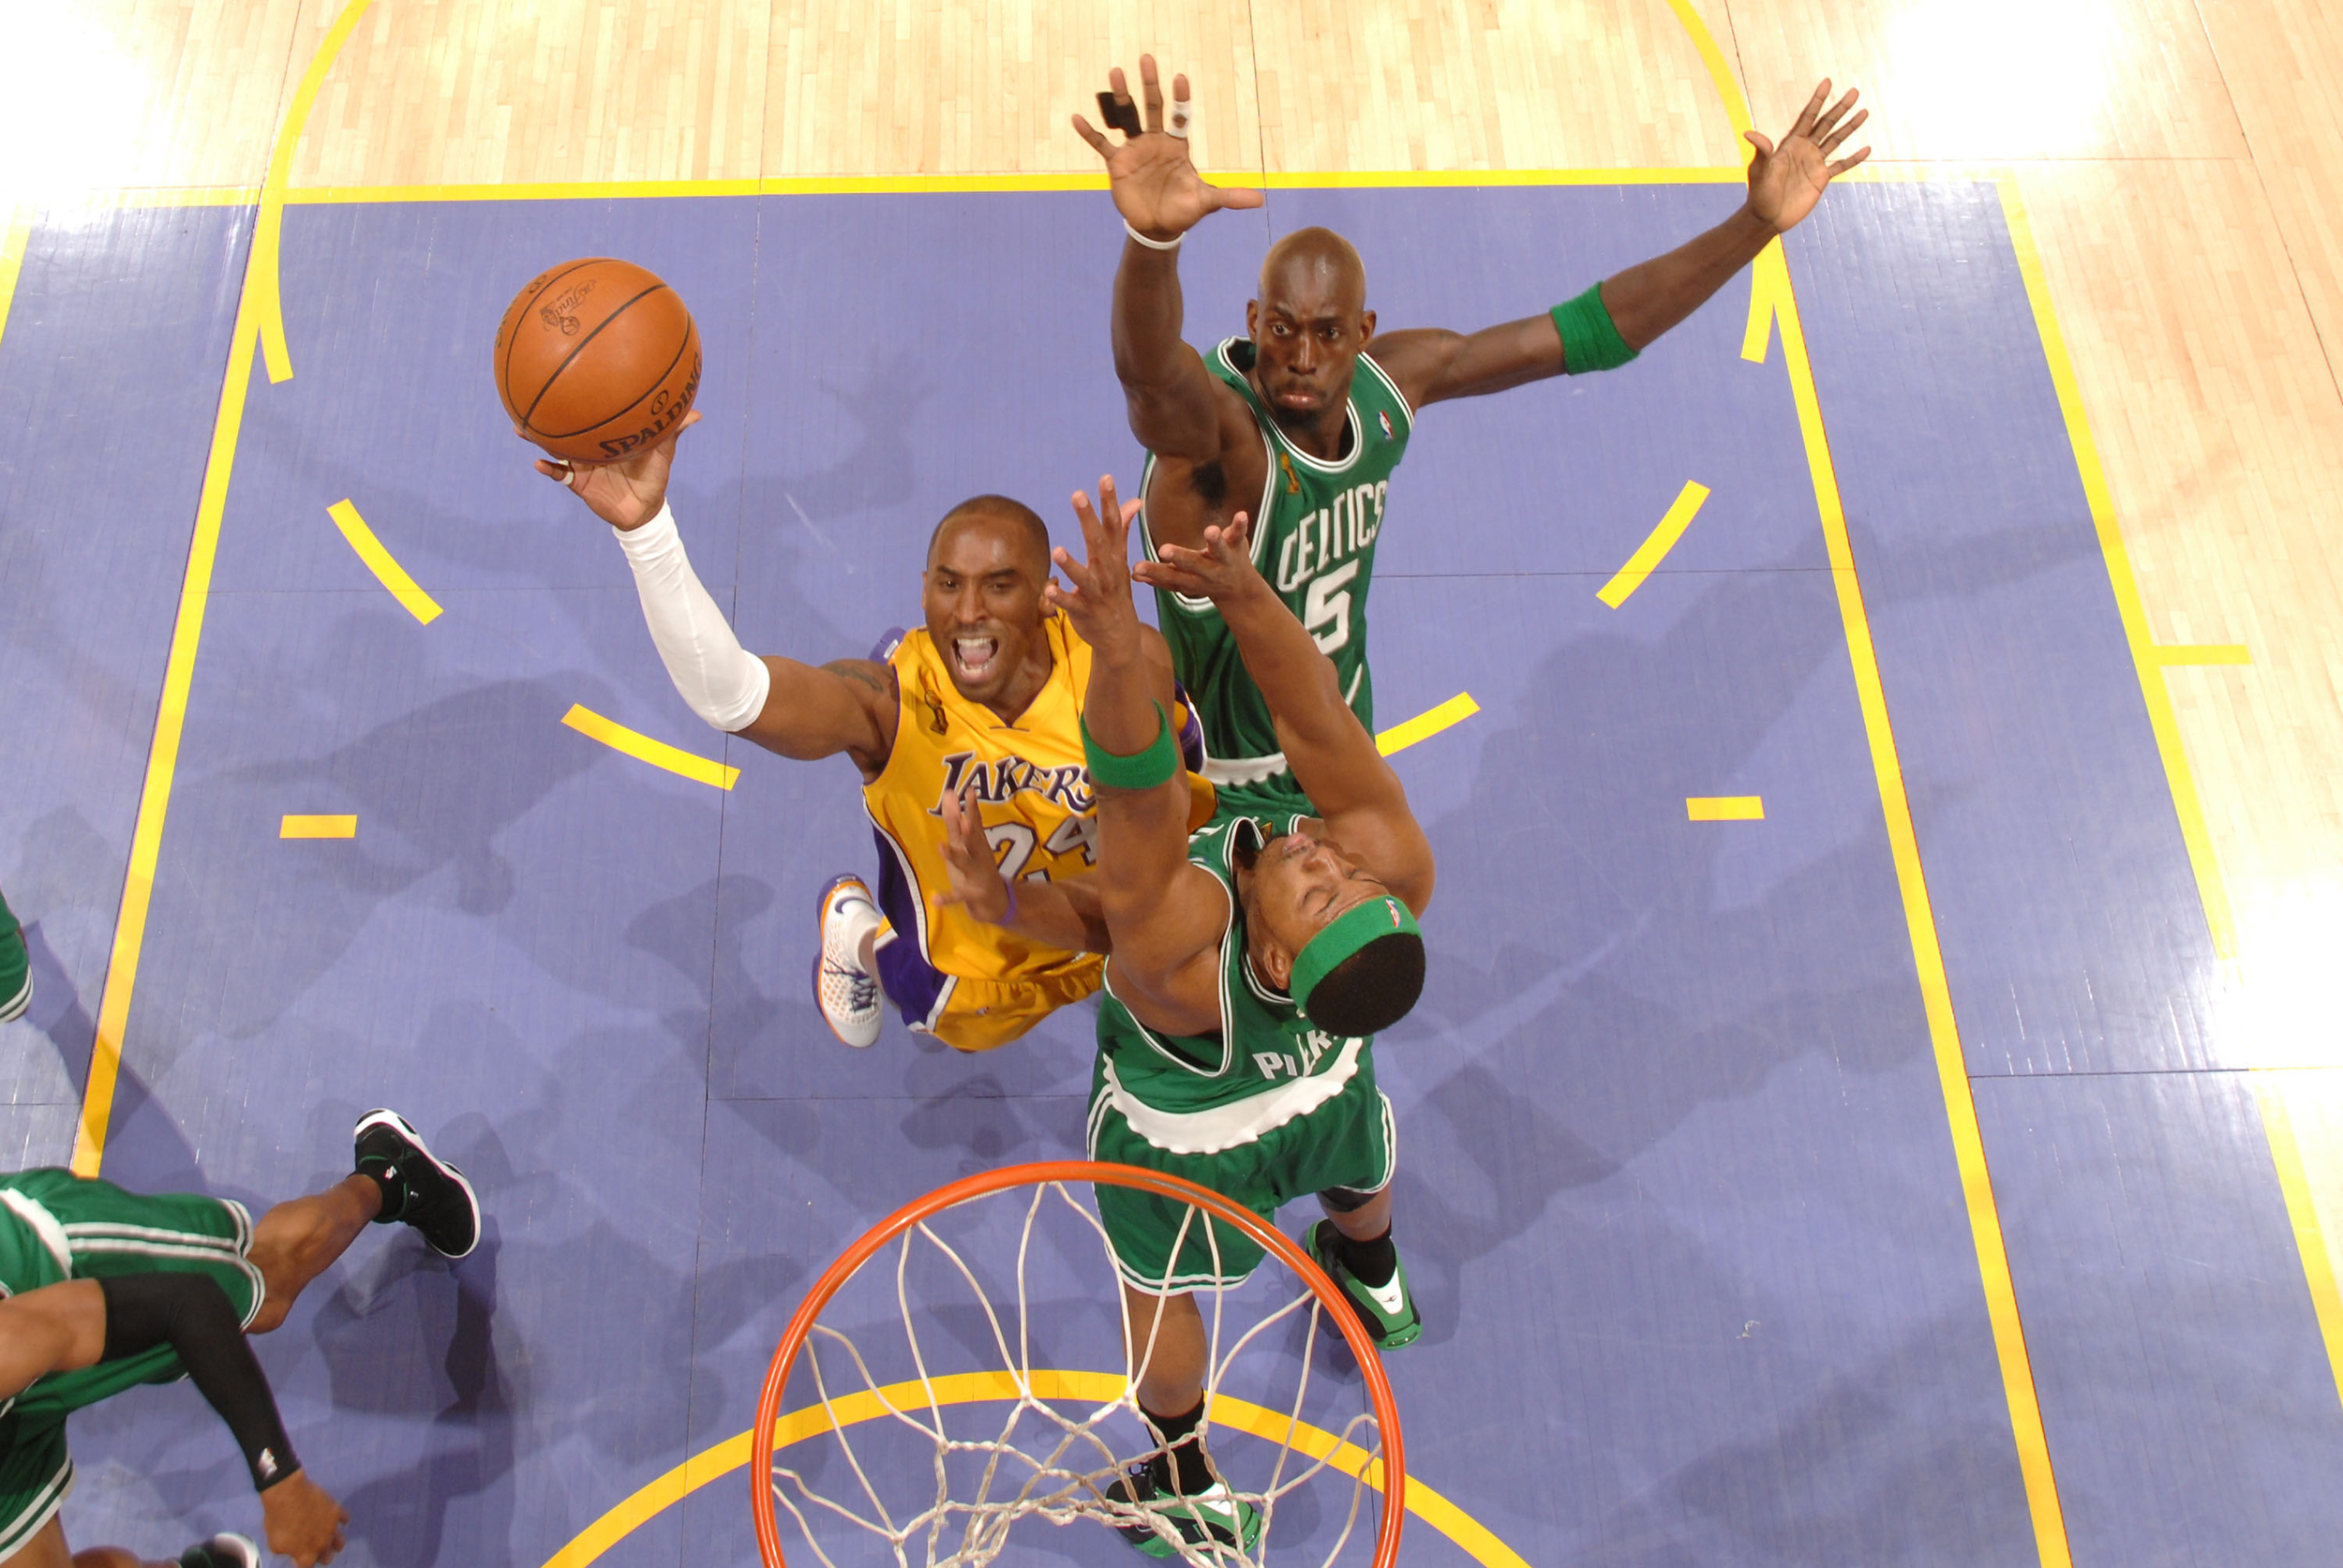 3204d76f53b Kobe Bryant (No. 24) of the Los Angeles Lakers attempts a shot against the  defense of Kevin Garnett (No. 5) of the Boston Celtics in Game 4 of the 2008  NBA ...